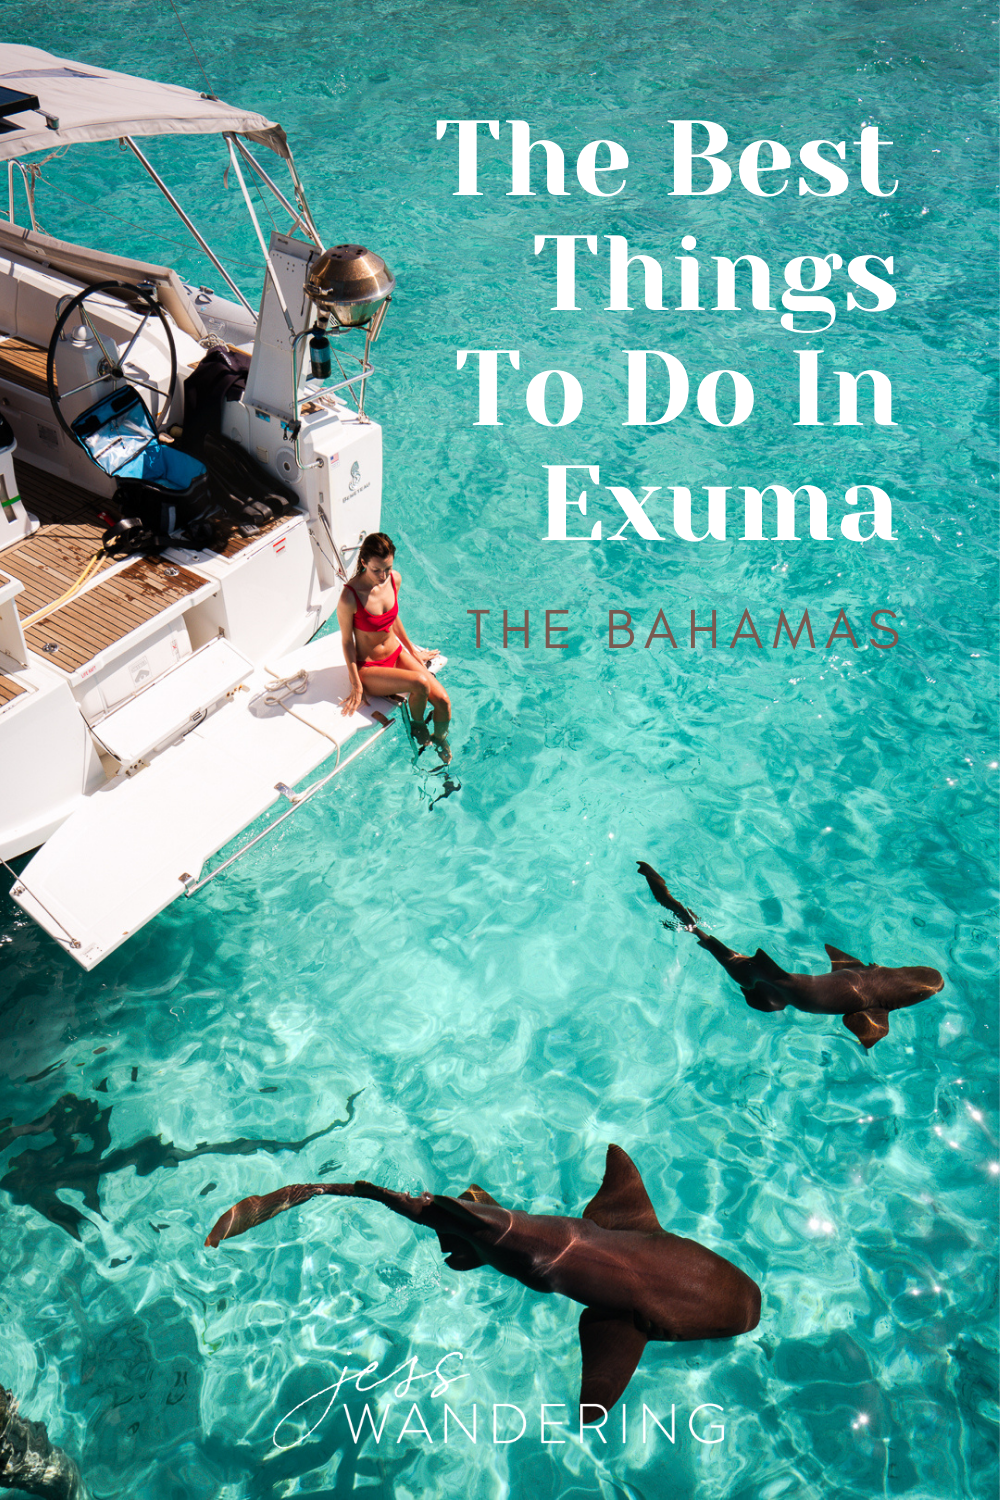 The best things to do in the Exuma, Bahamas.